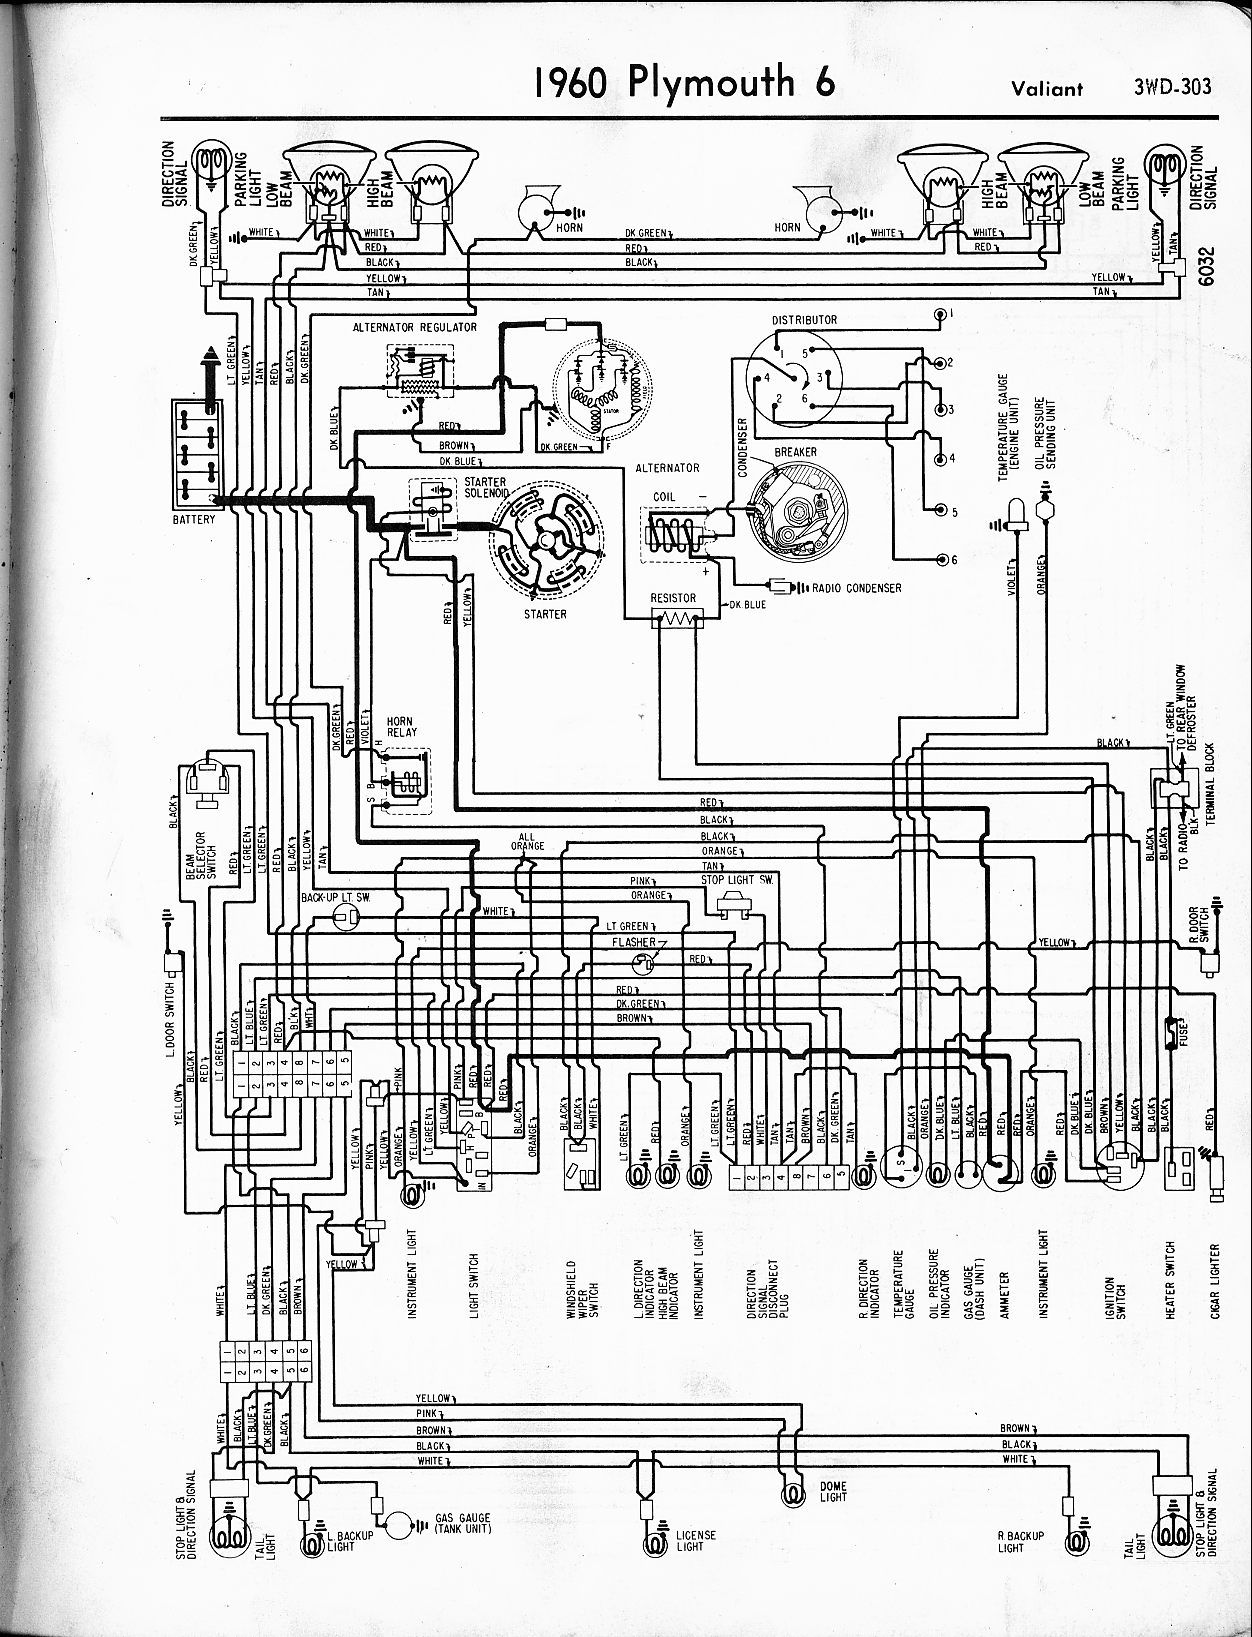 1974 Plymouth Scamp Wiring Diagram Free For You Porsche 68 Valiant Schematics Rh 16 8 3 Schlaglicht Regional De Duster